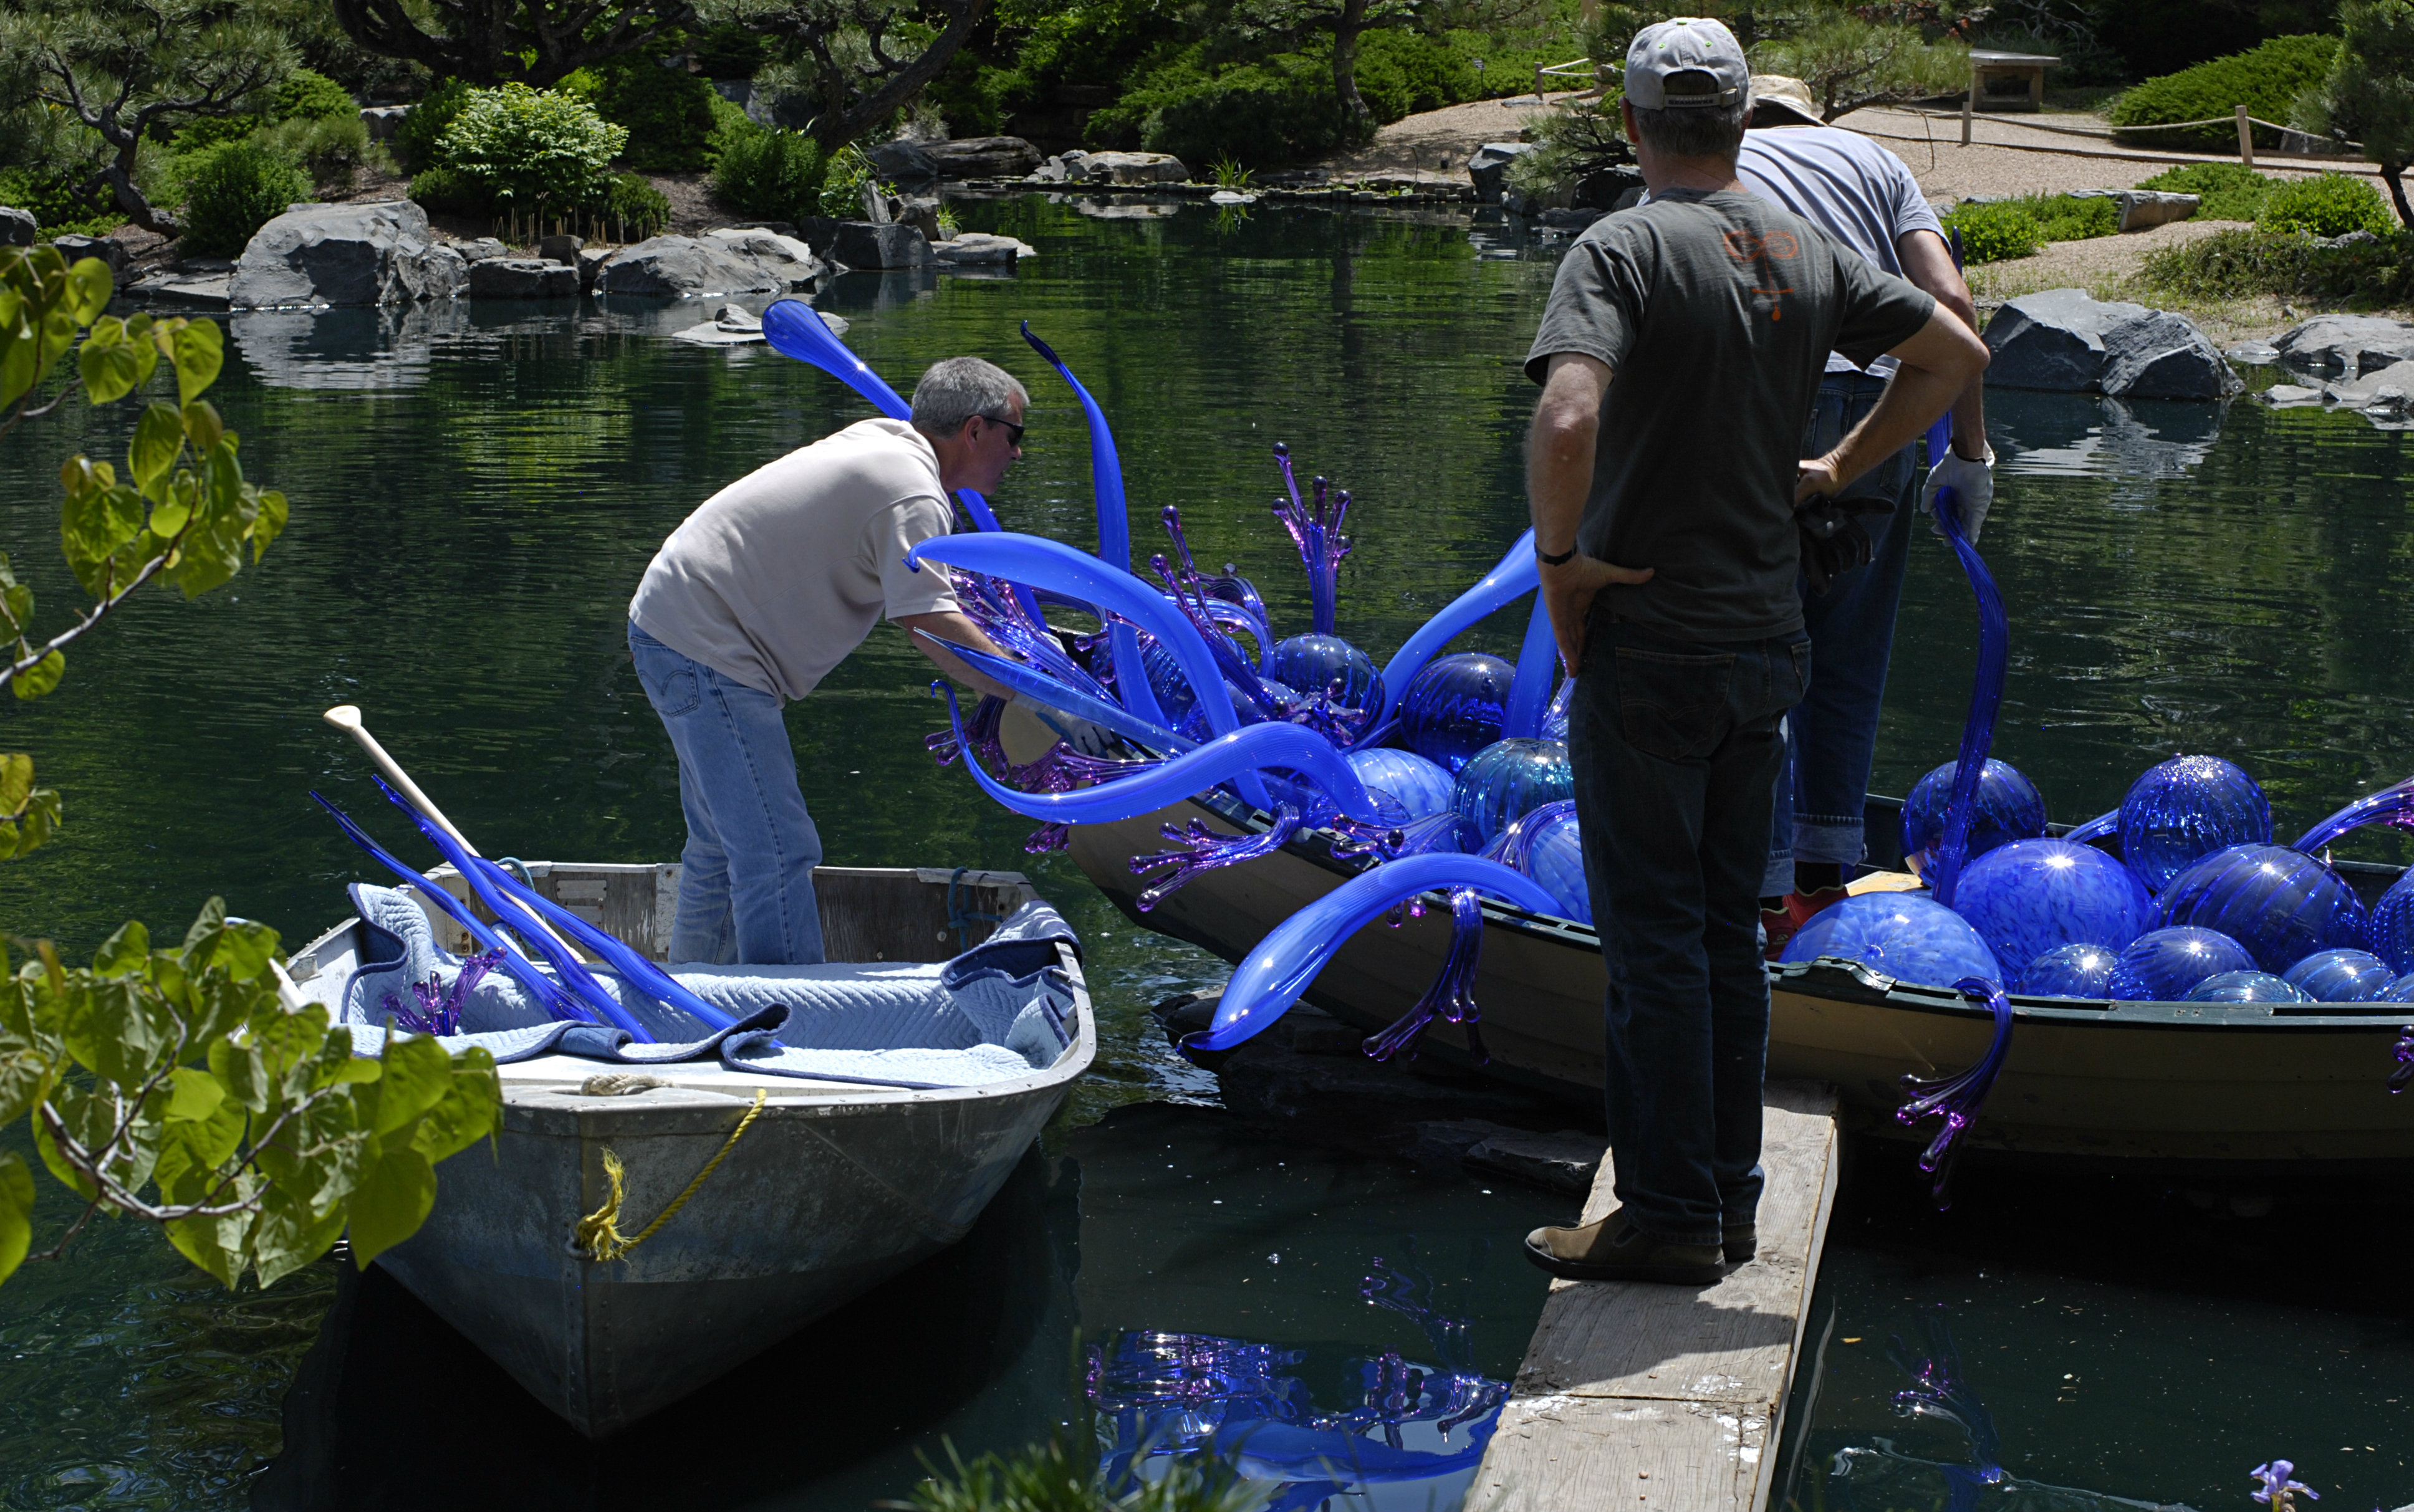 <p>Members of Team Chihuly from Washington help install a glass sculpture for the Denver Botanic Gardens 2014 exhibition.</p>